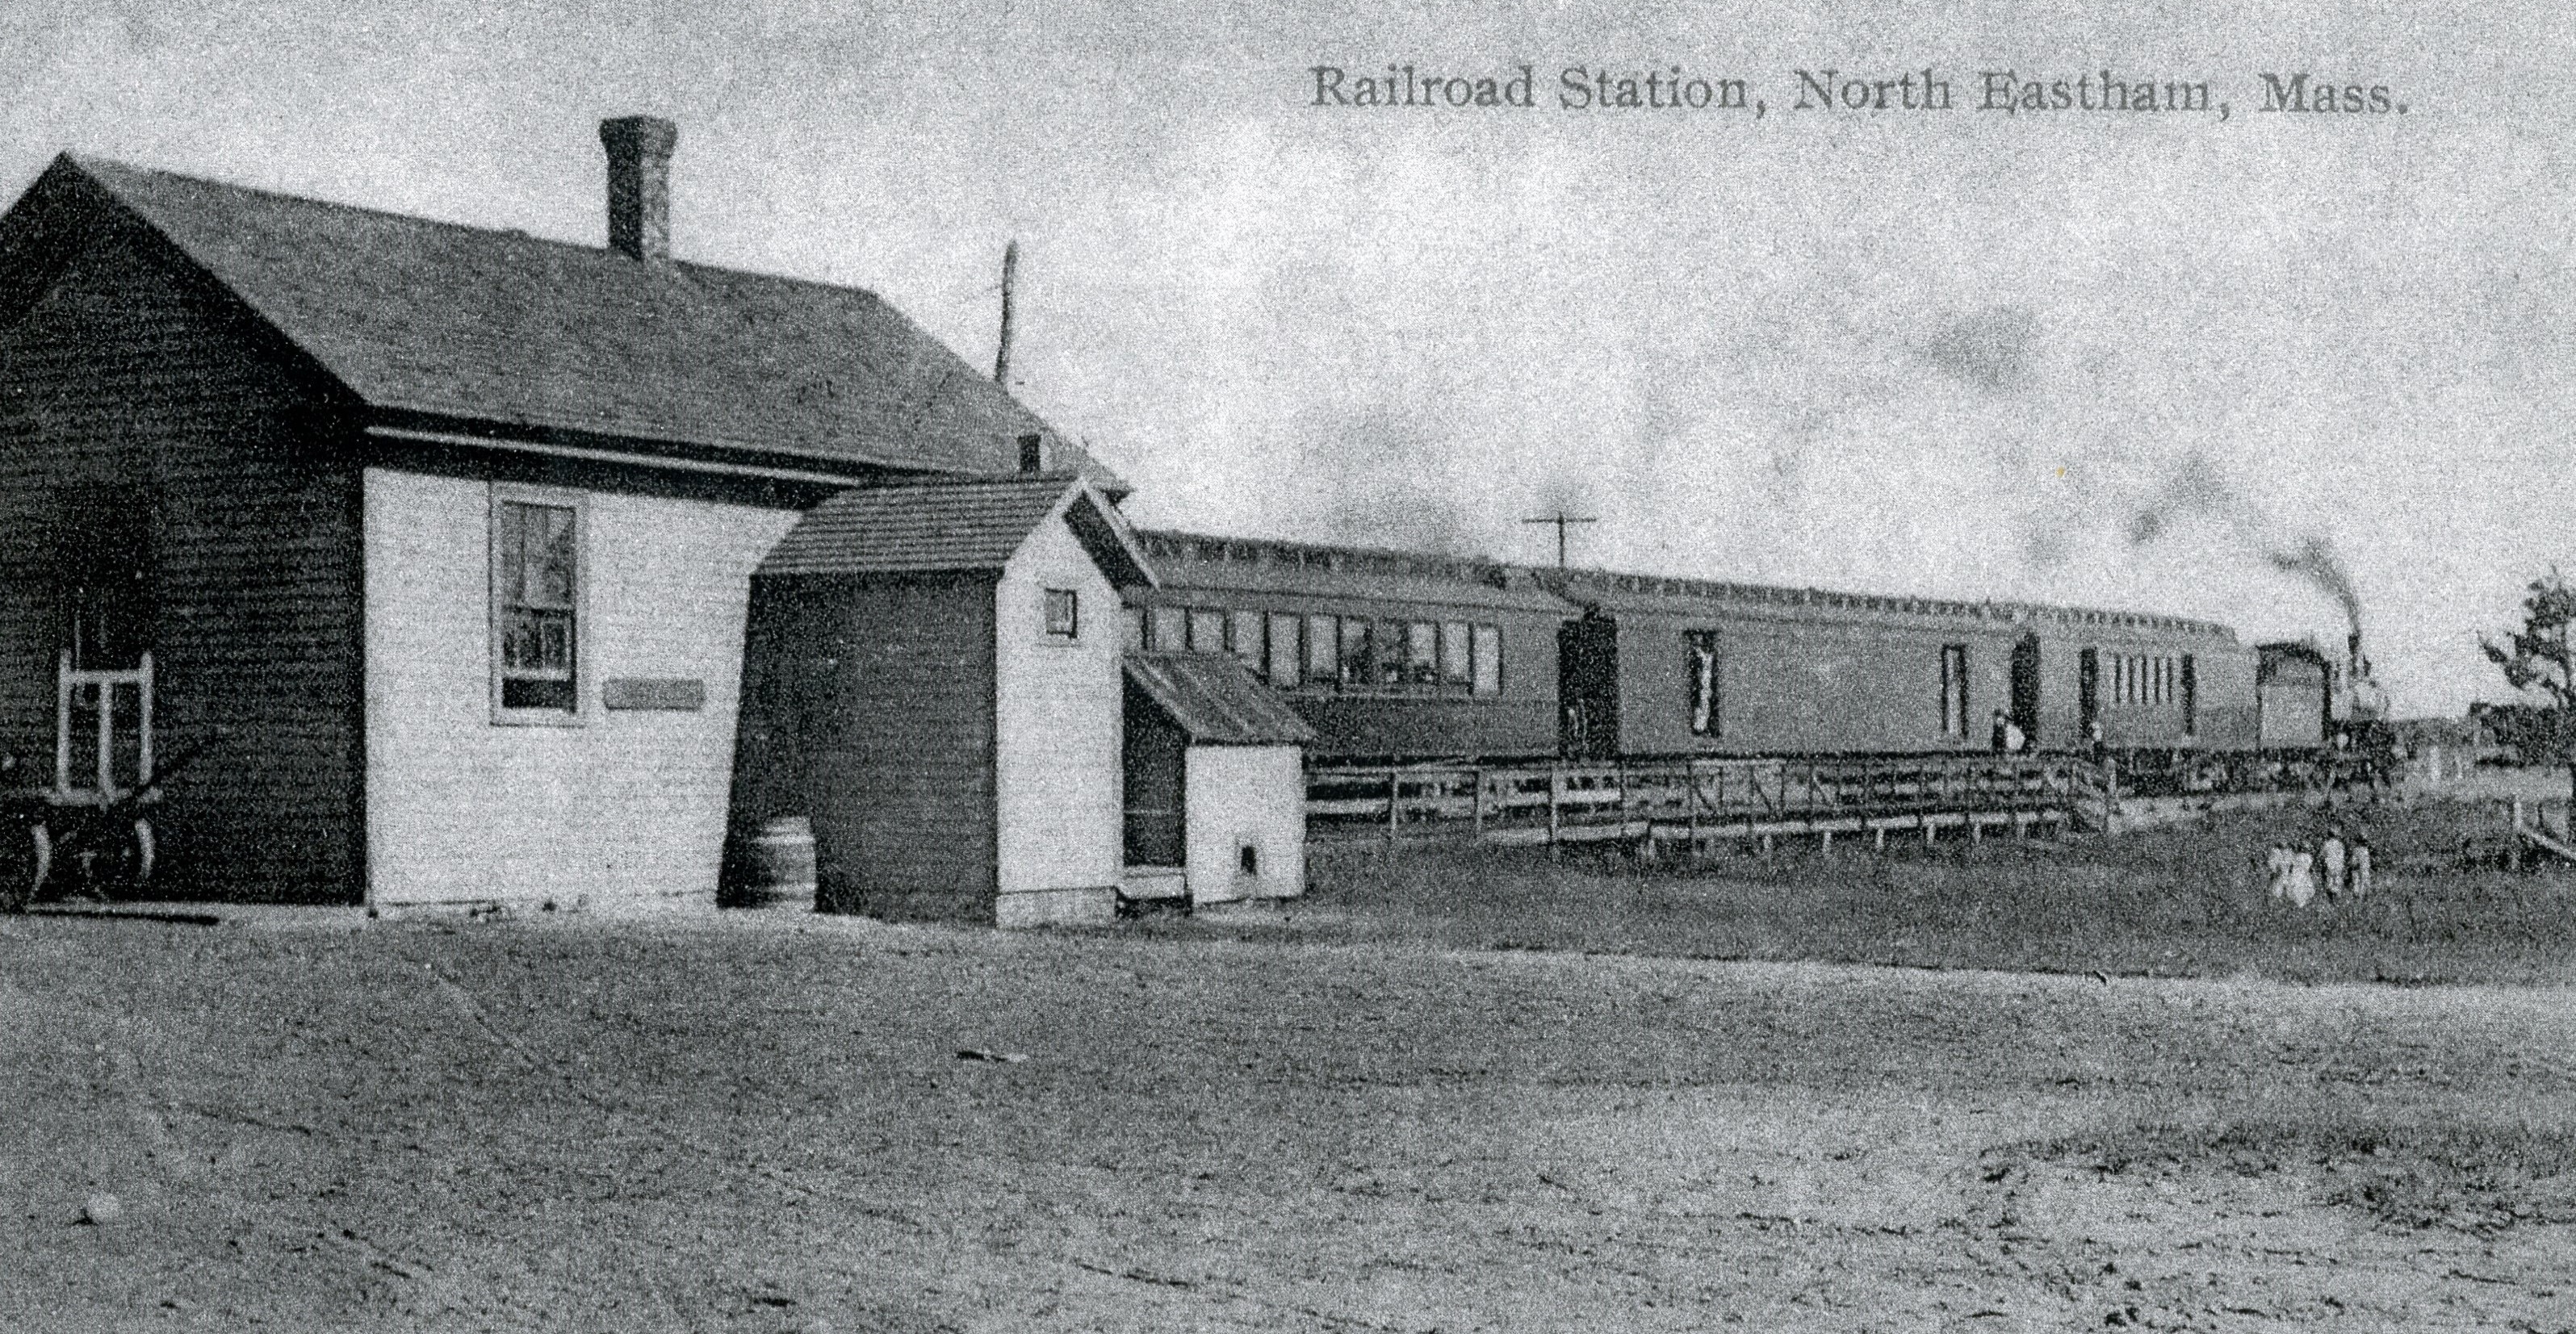 Eastham RR Station - North Eastham Station